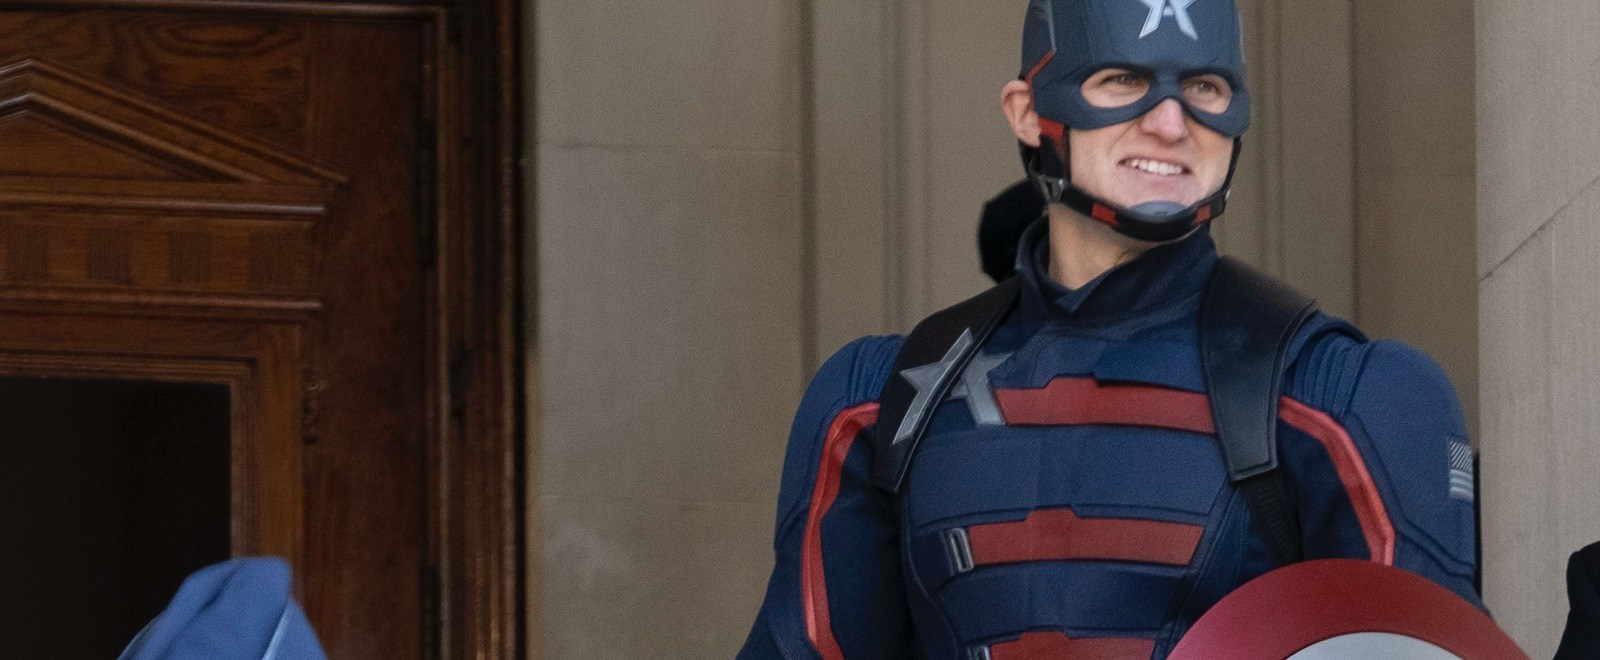 Yes. Wyatt Russell Saw Your Captain America Meme Comparing Him To 'Up'